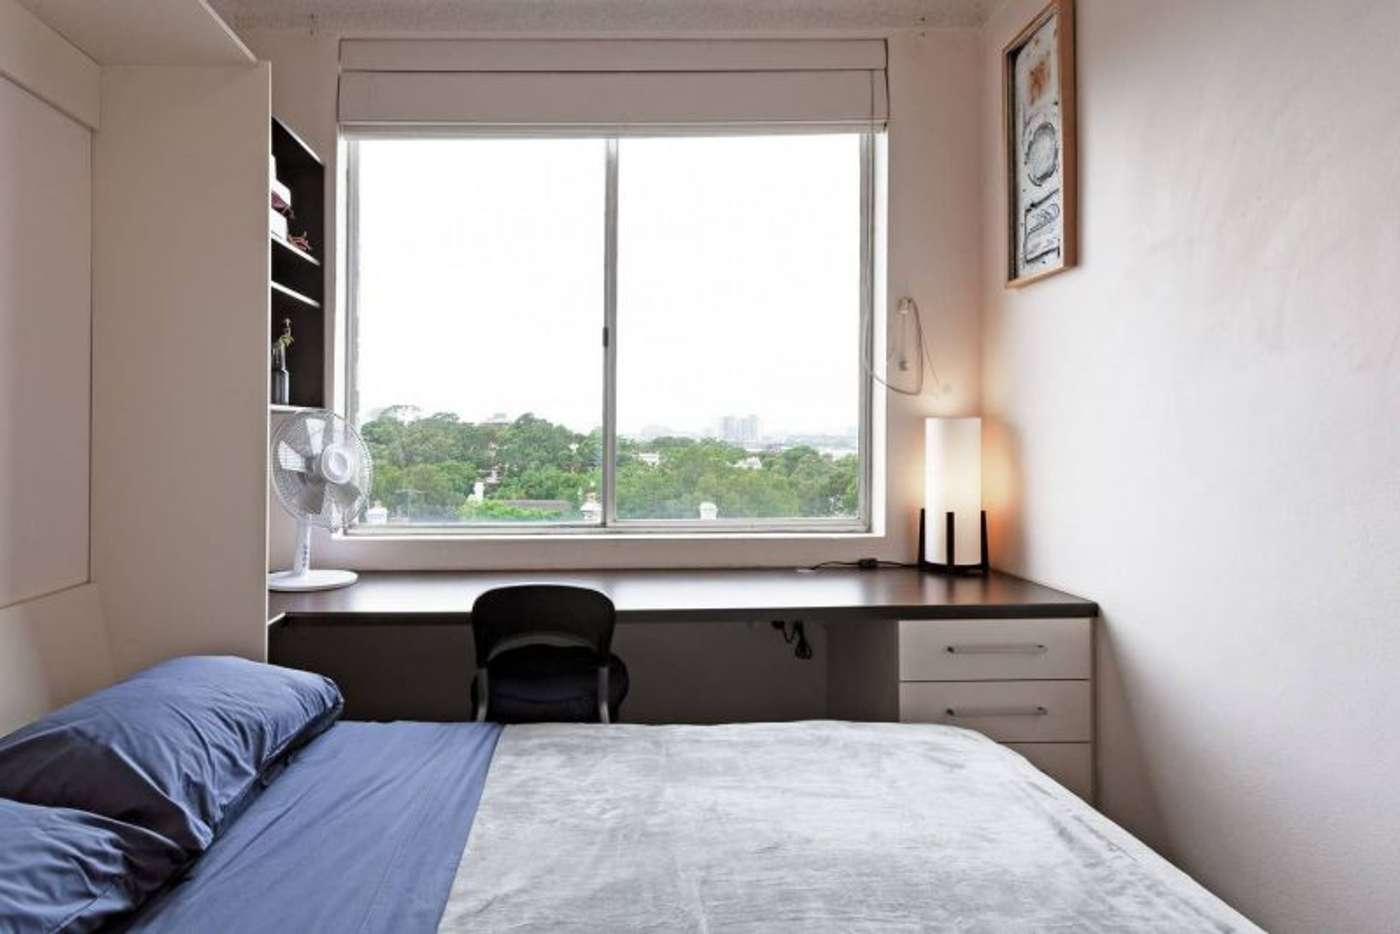 Sixth view of Homely apartment listing, 49/2-6 Brown Street, Newtown NSW 2042